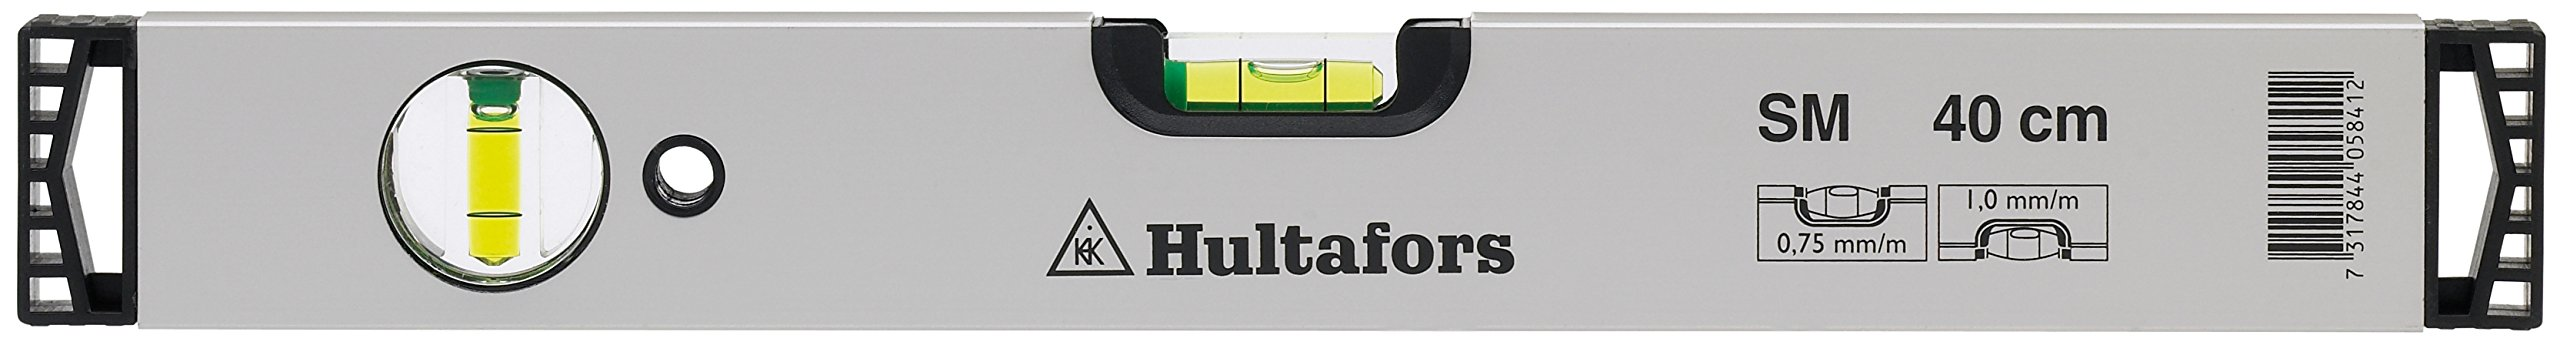 Hultafors SM 40 Aluminium DIY Spirit Level | 2 High Transparent Vials | 40cm